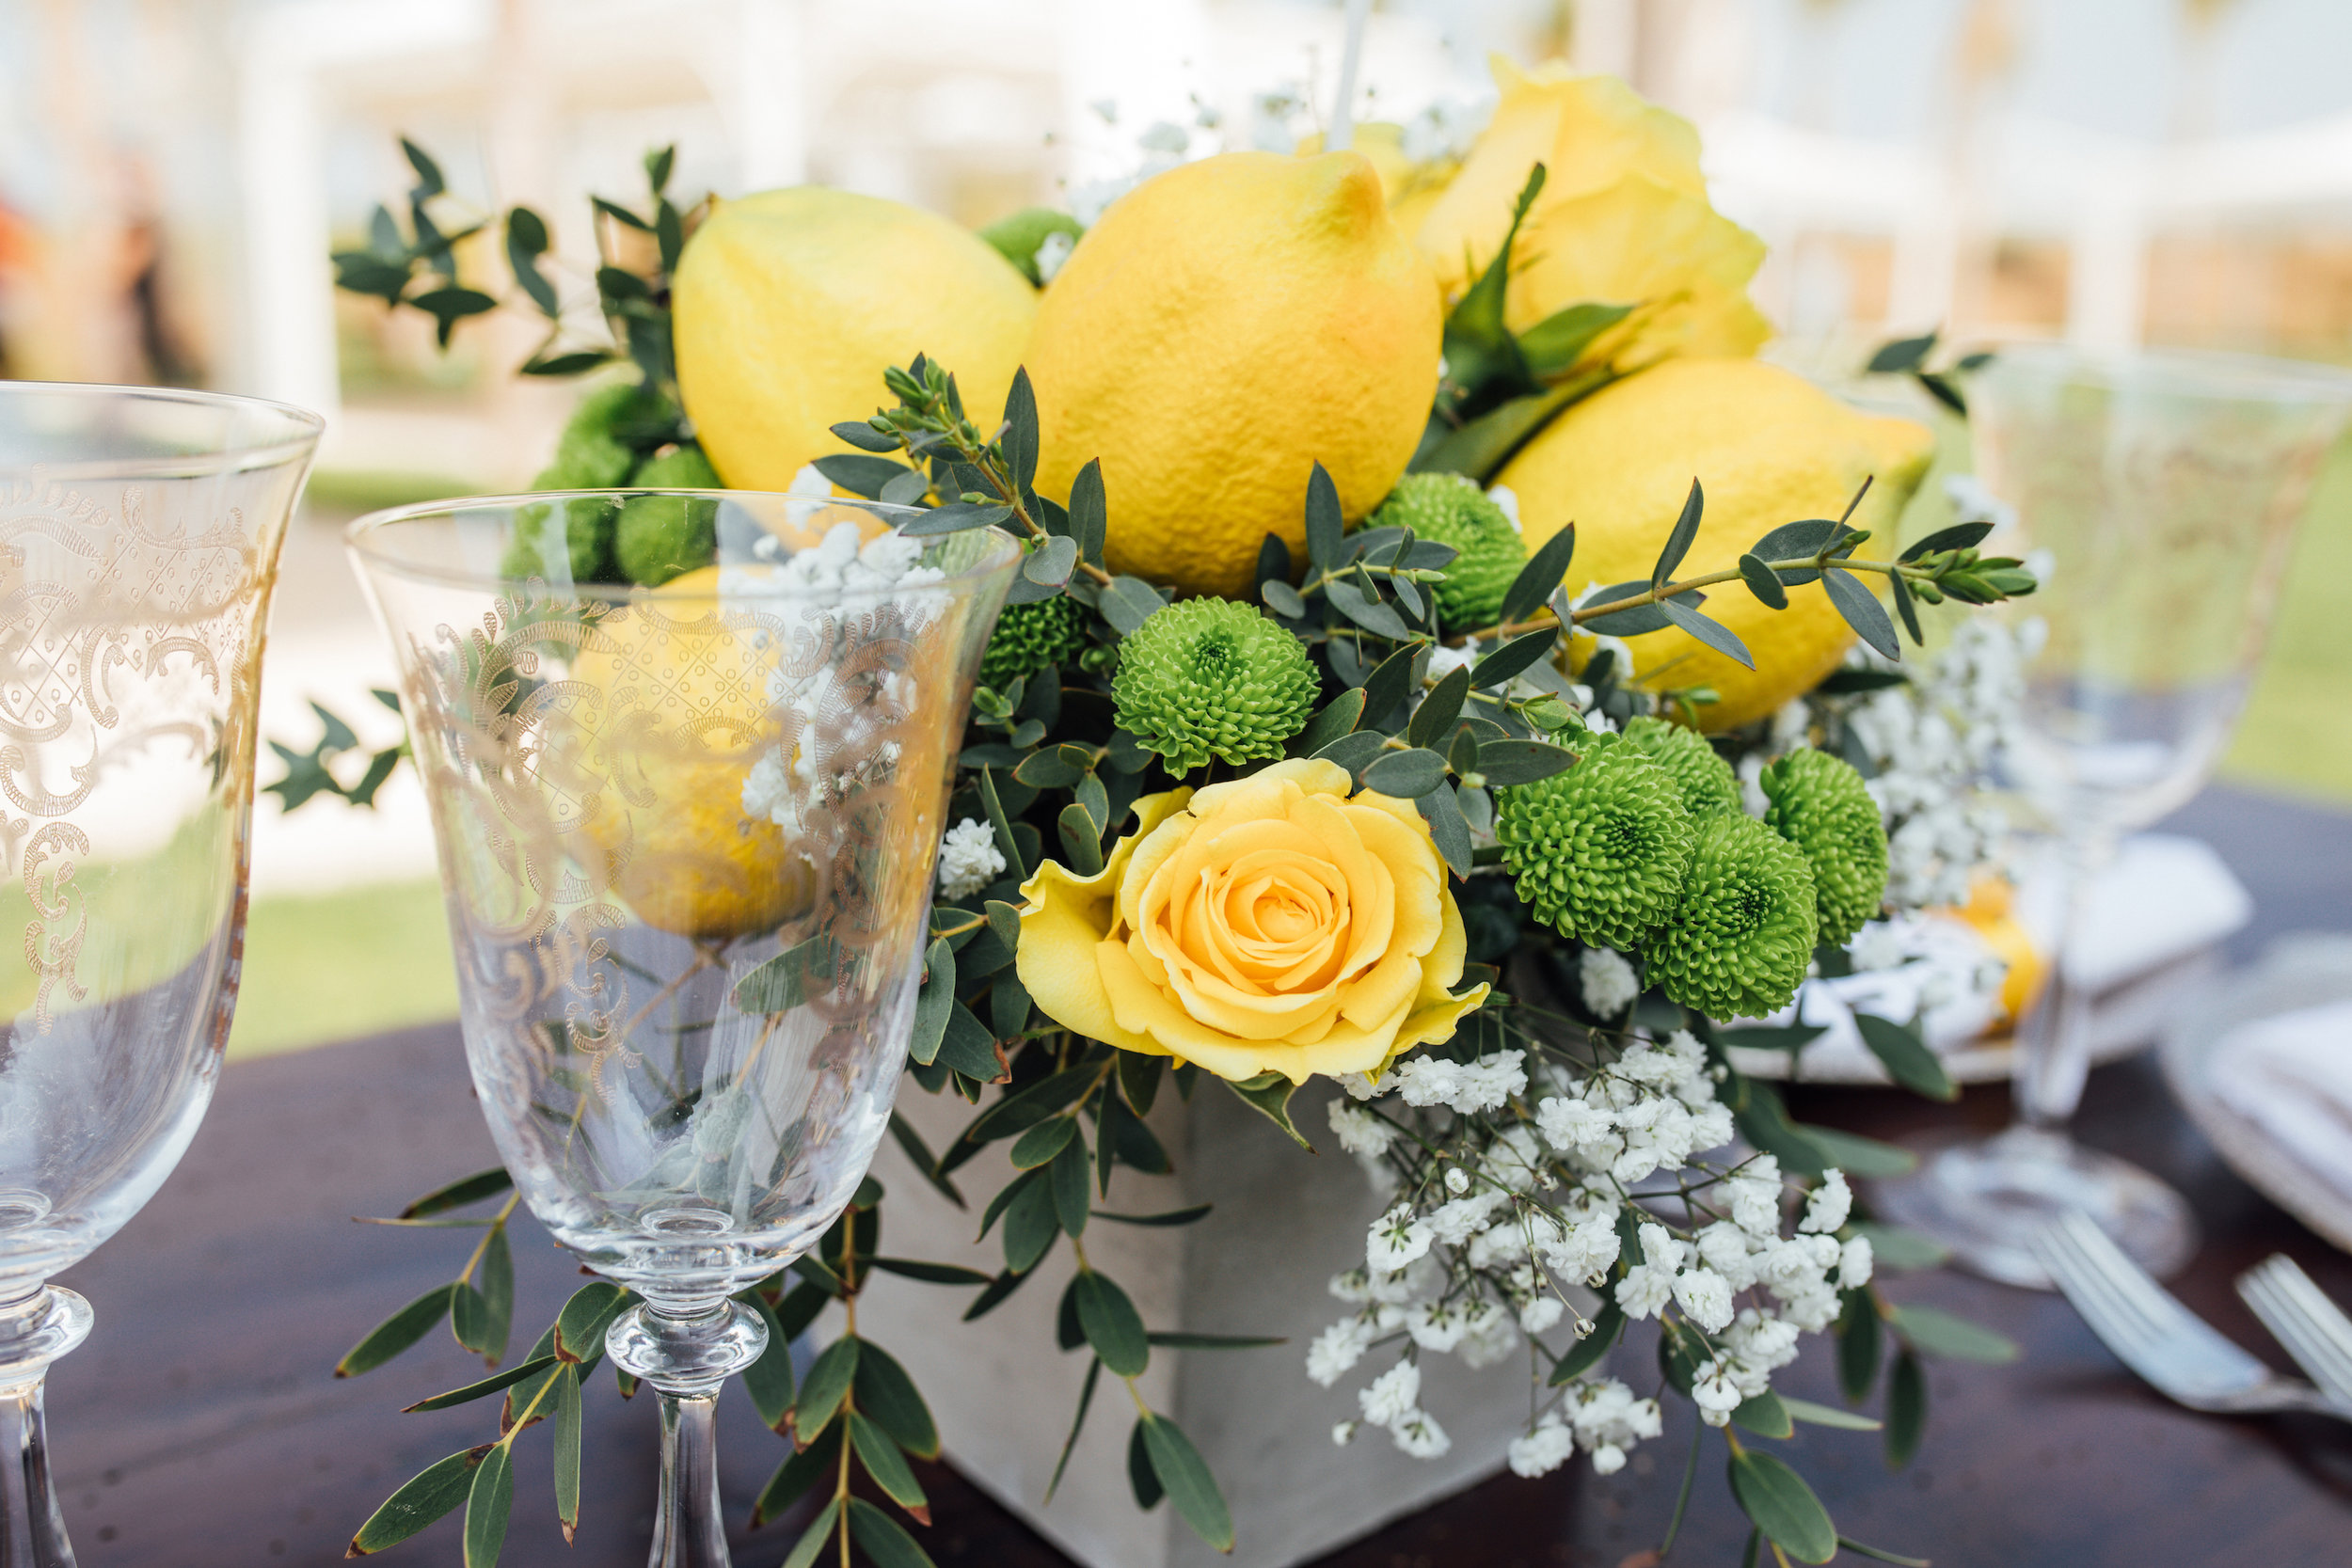 Gorgeous Lemon Centerpiece with Yellow Roses from a Garden Wedding Styled Shoot in Rome Italy - by Jess Palatucci Photography - as seen on www.BrendasWeddingBlog.com